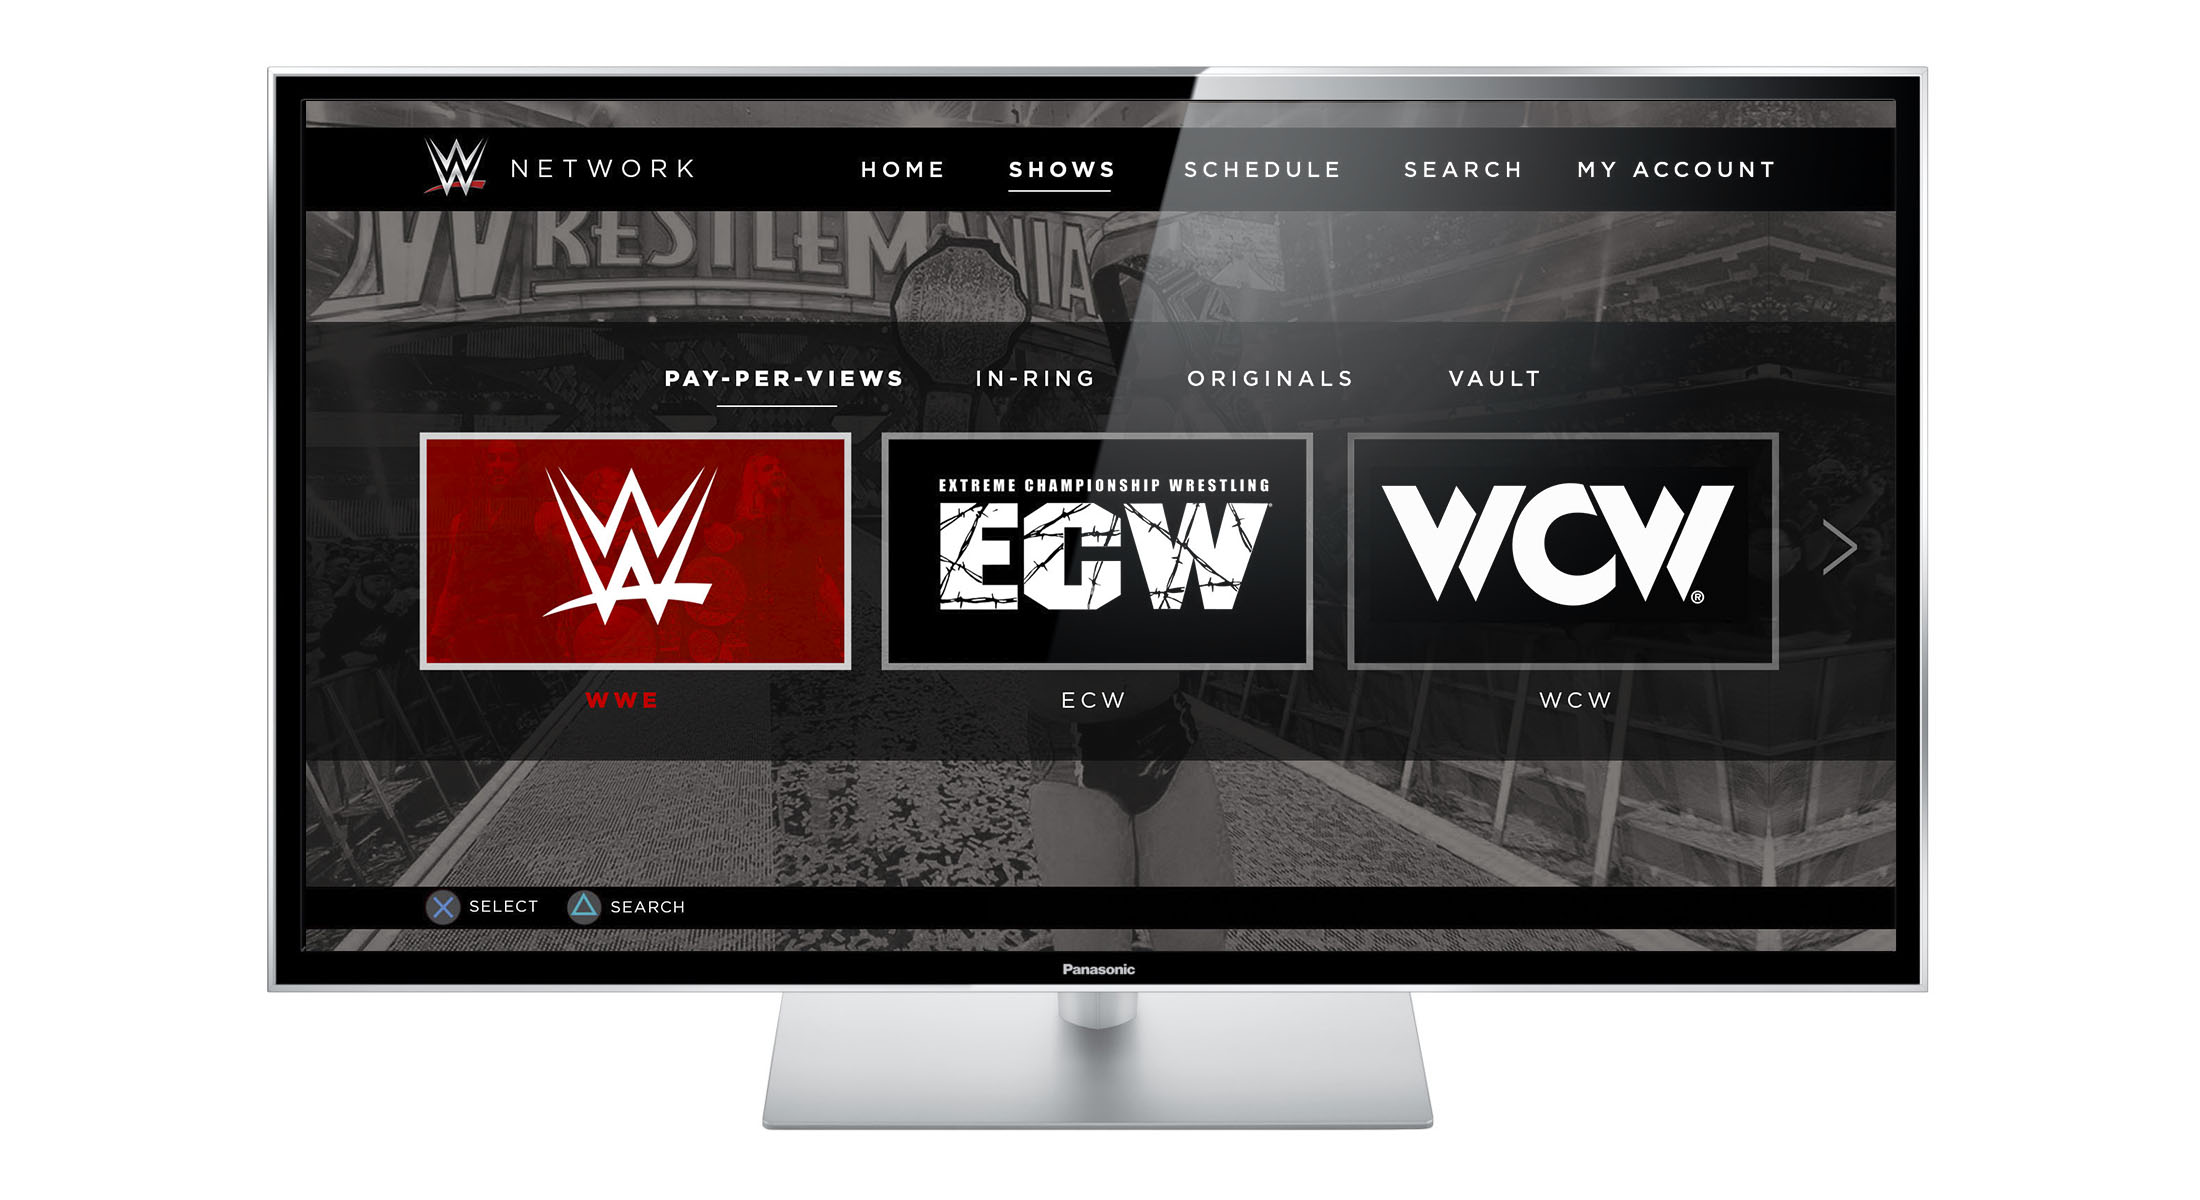 WWE_Network_ReDesign_Comp_0001_03_SHOWS_FINAL.jpg